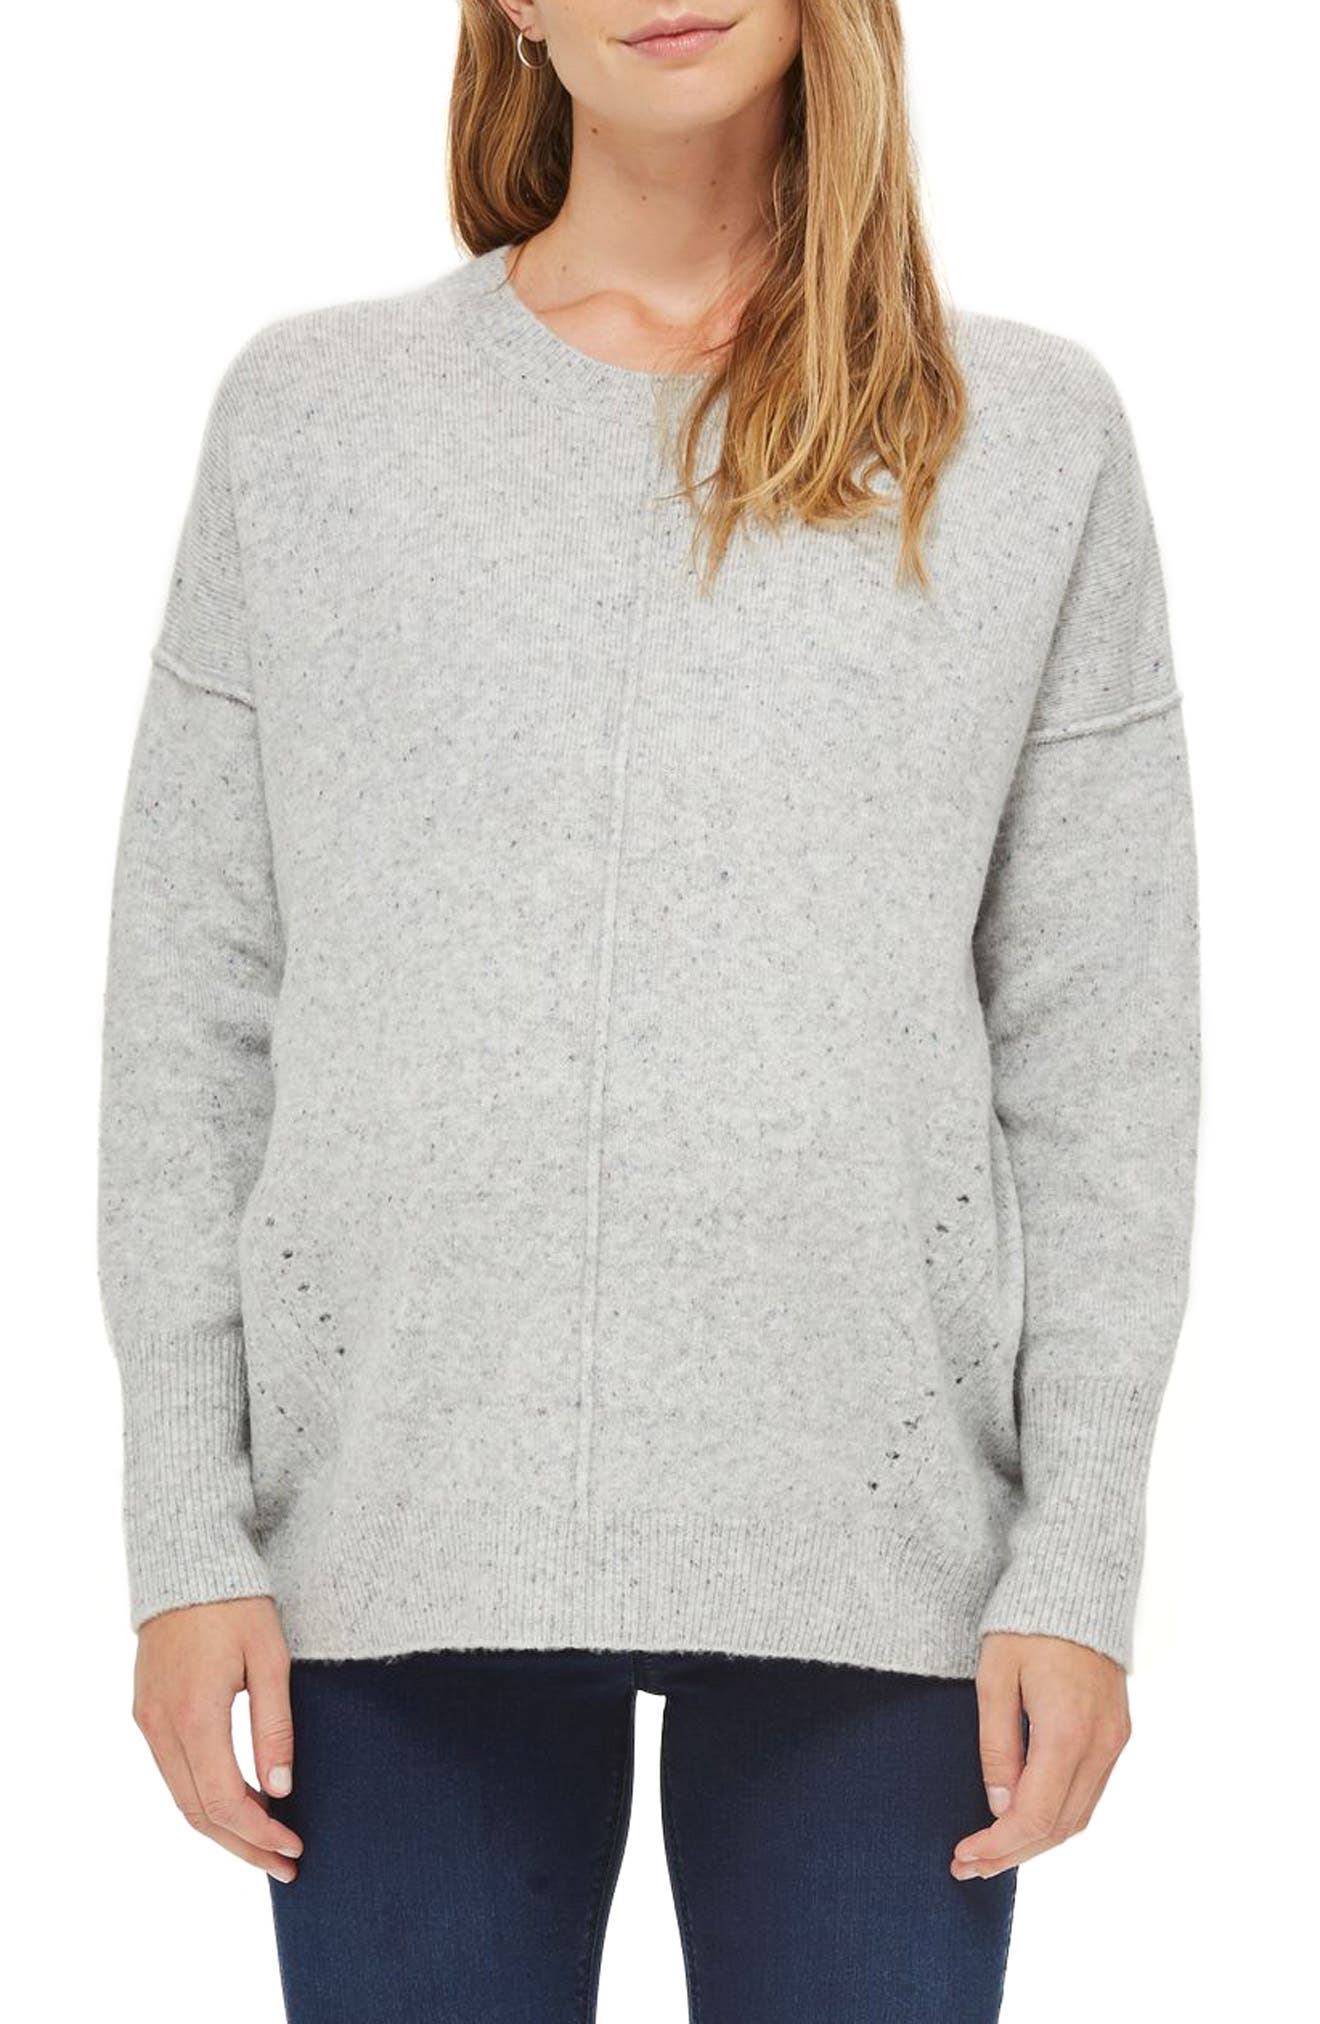 Topshop Pointelle Maternity Sweater